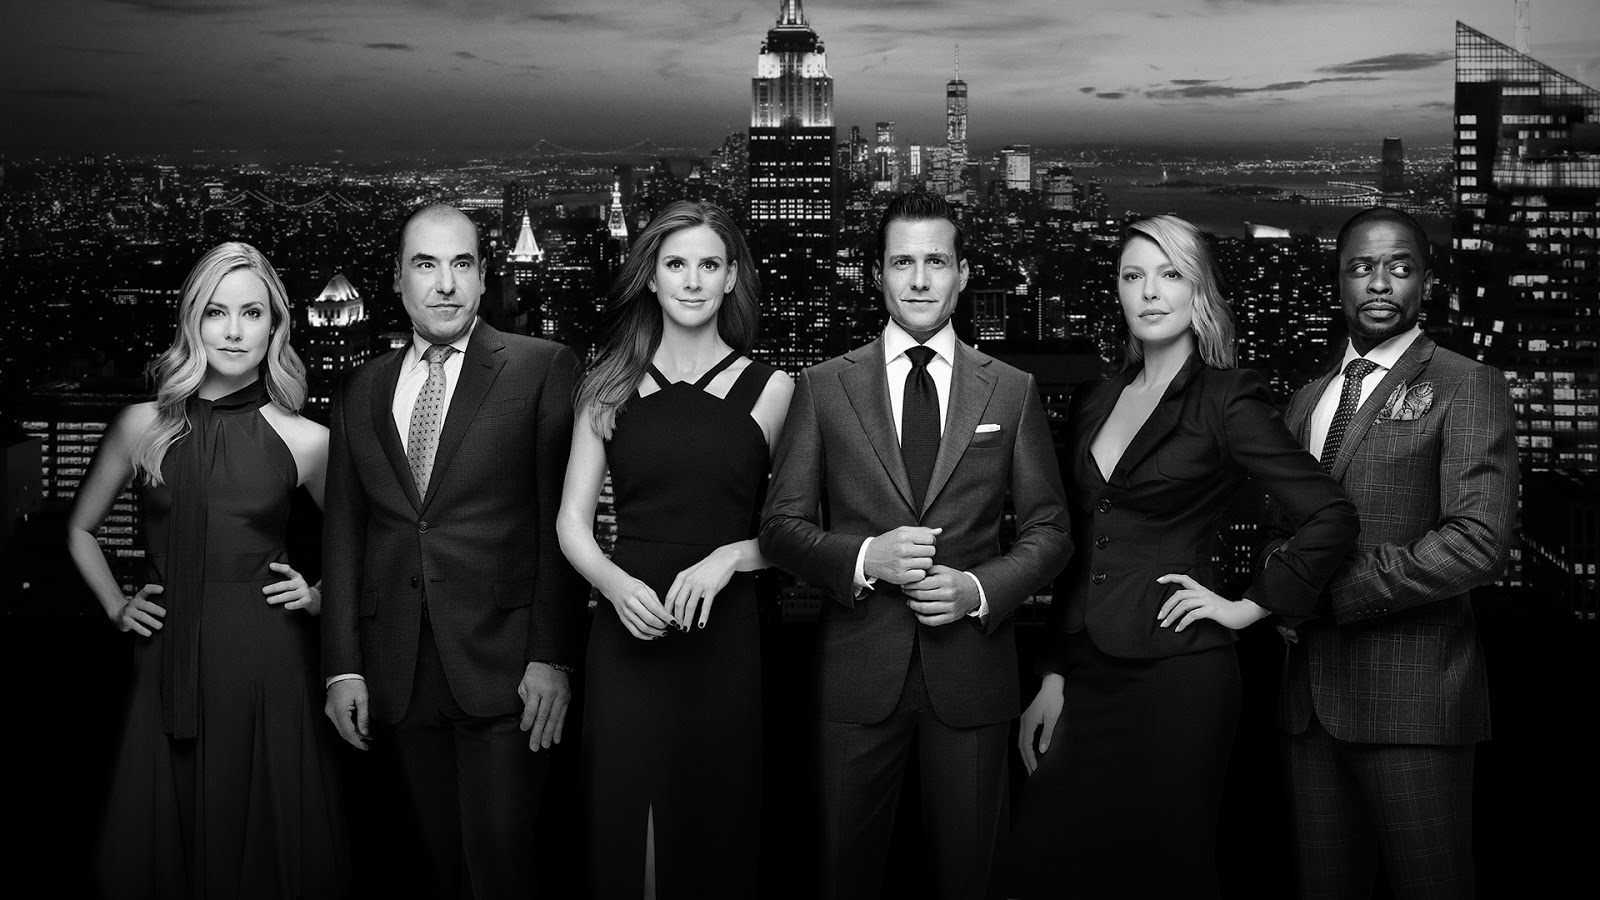 Katrina Bennett, Louis Litt, Donna Paulsen, Harvey Specter, Samanta Wheeler y Alex Williams en la temporada 9